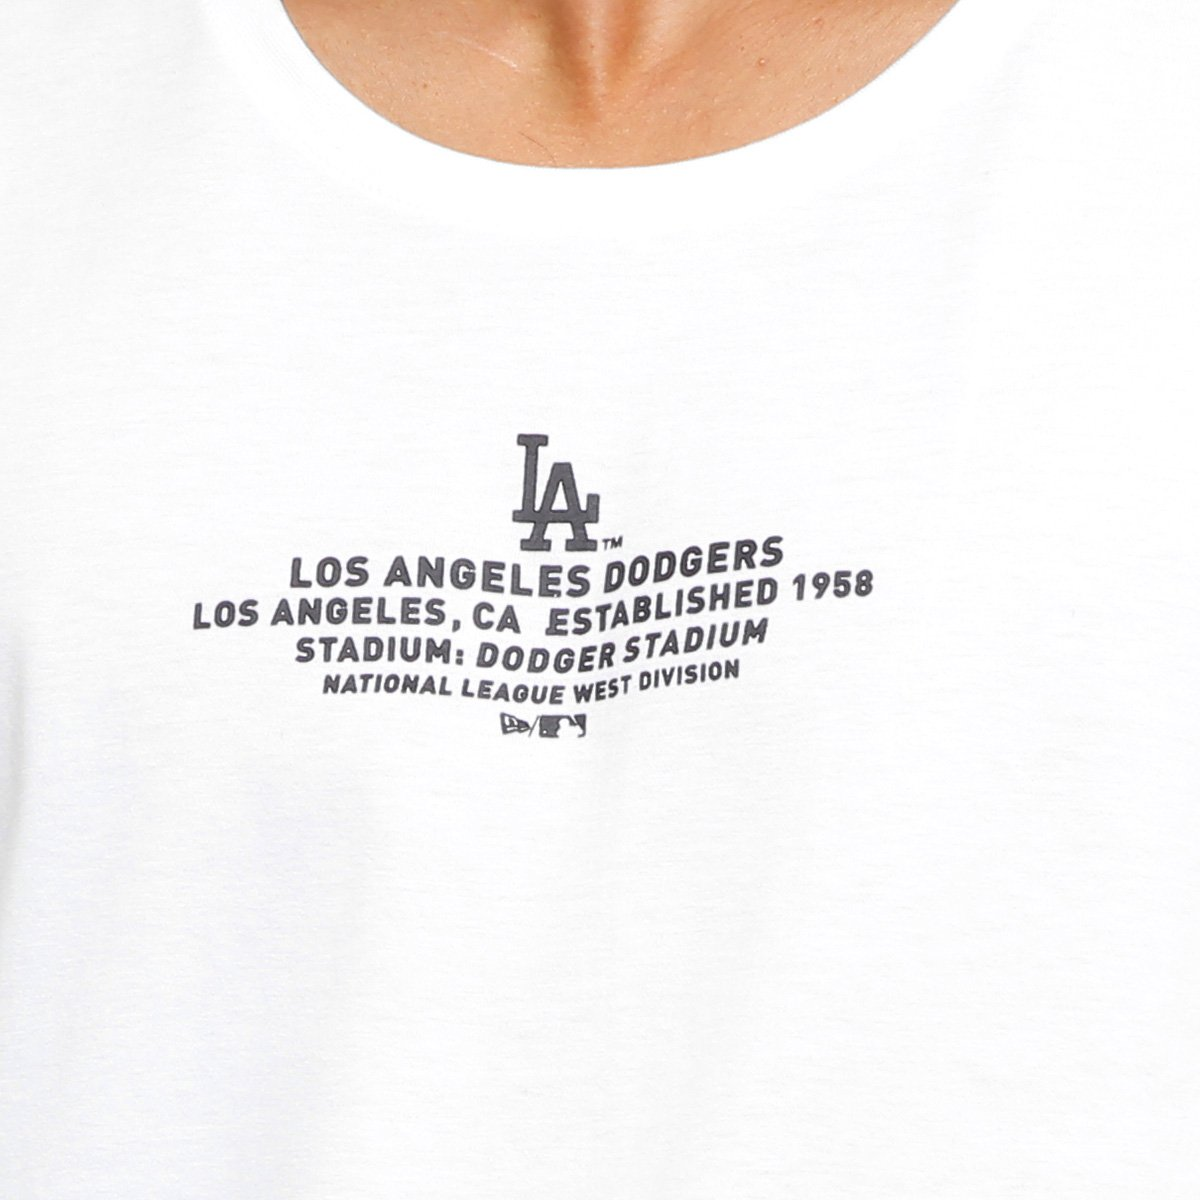 Branco 2023 Angeles Dodgers Los Era New Lic Camiseta Masculina w854BqYY